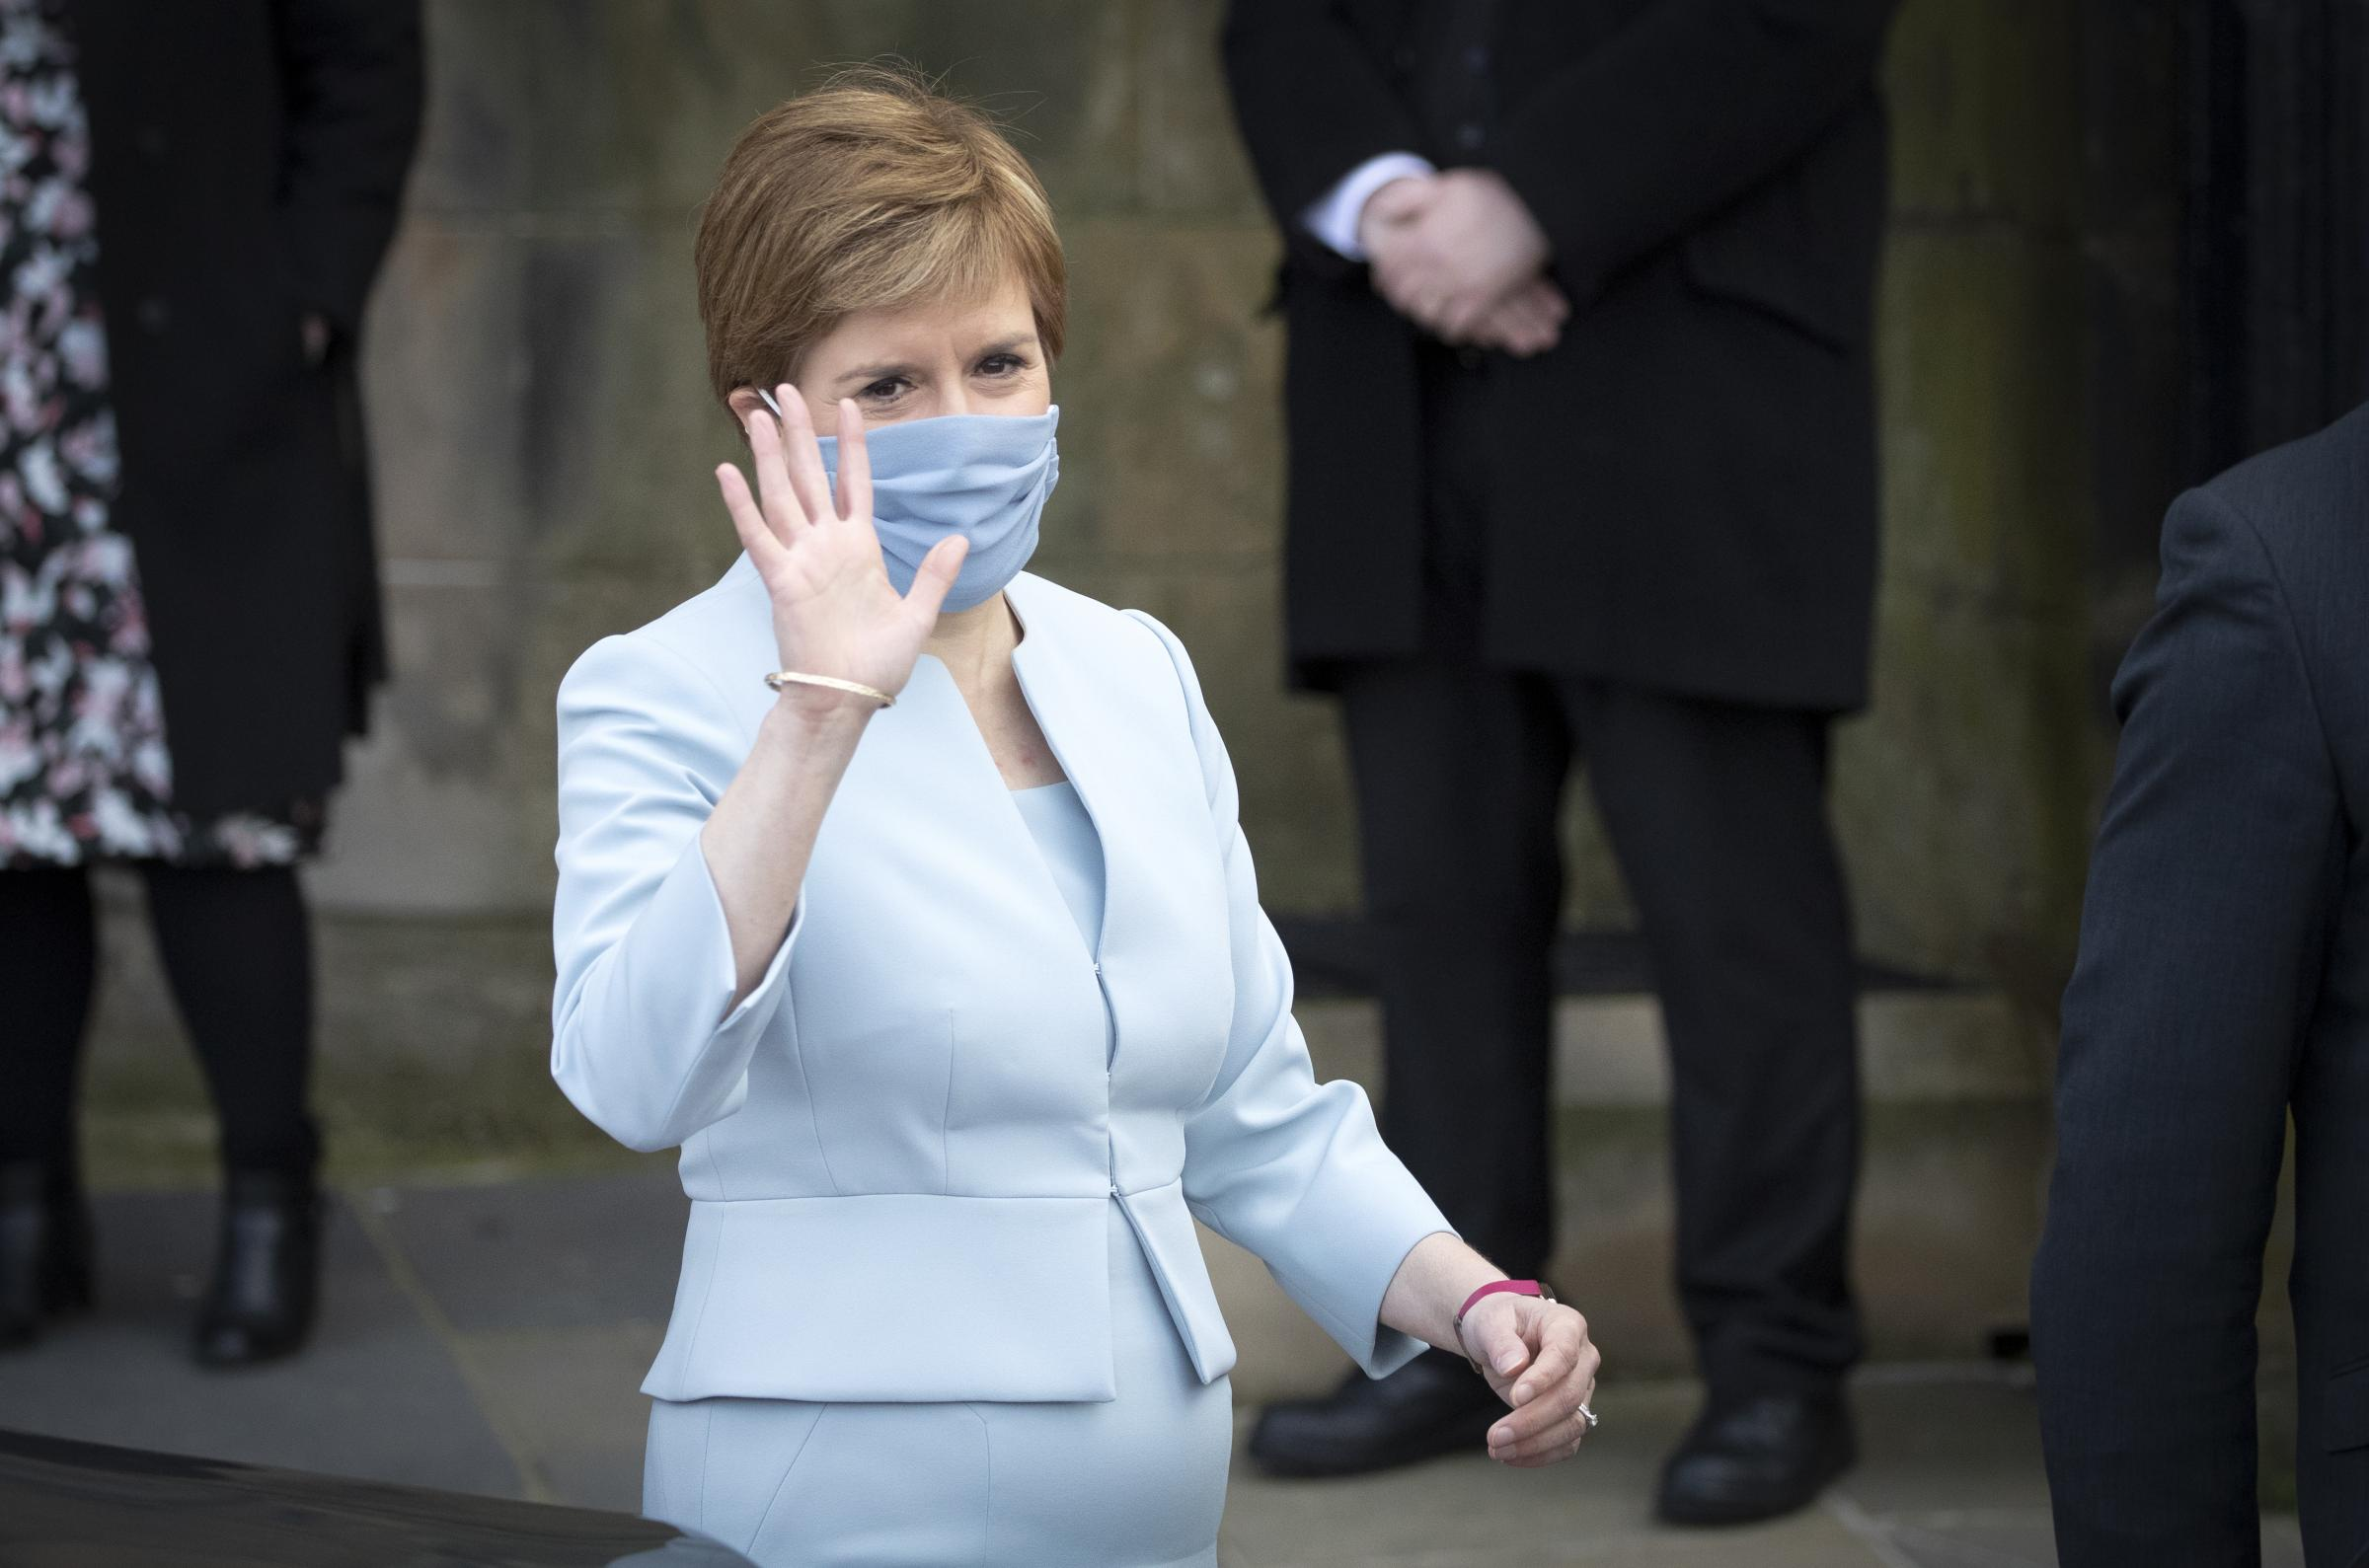 Nicola Sturgeon: We are at a fragile point in our pandemic journey